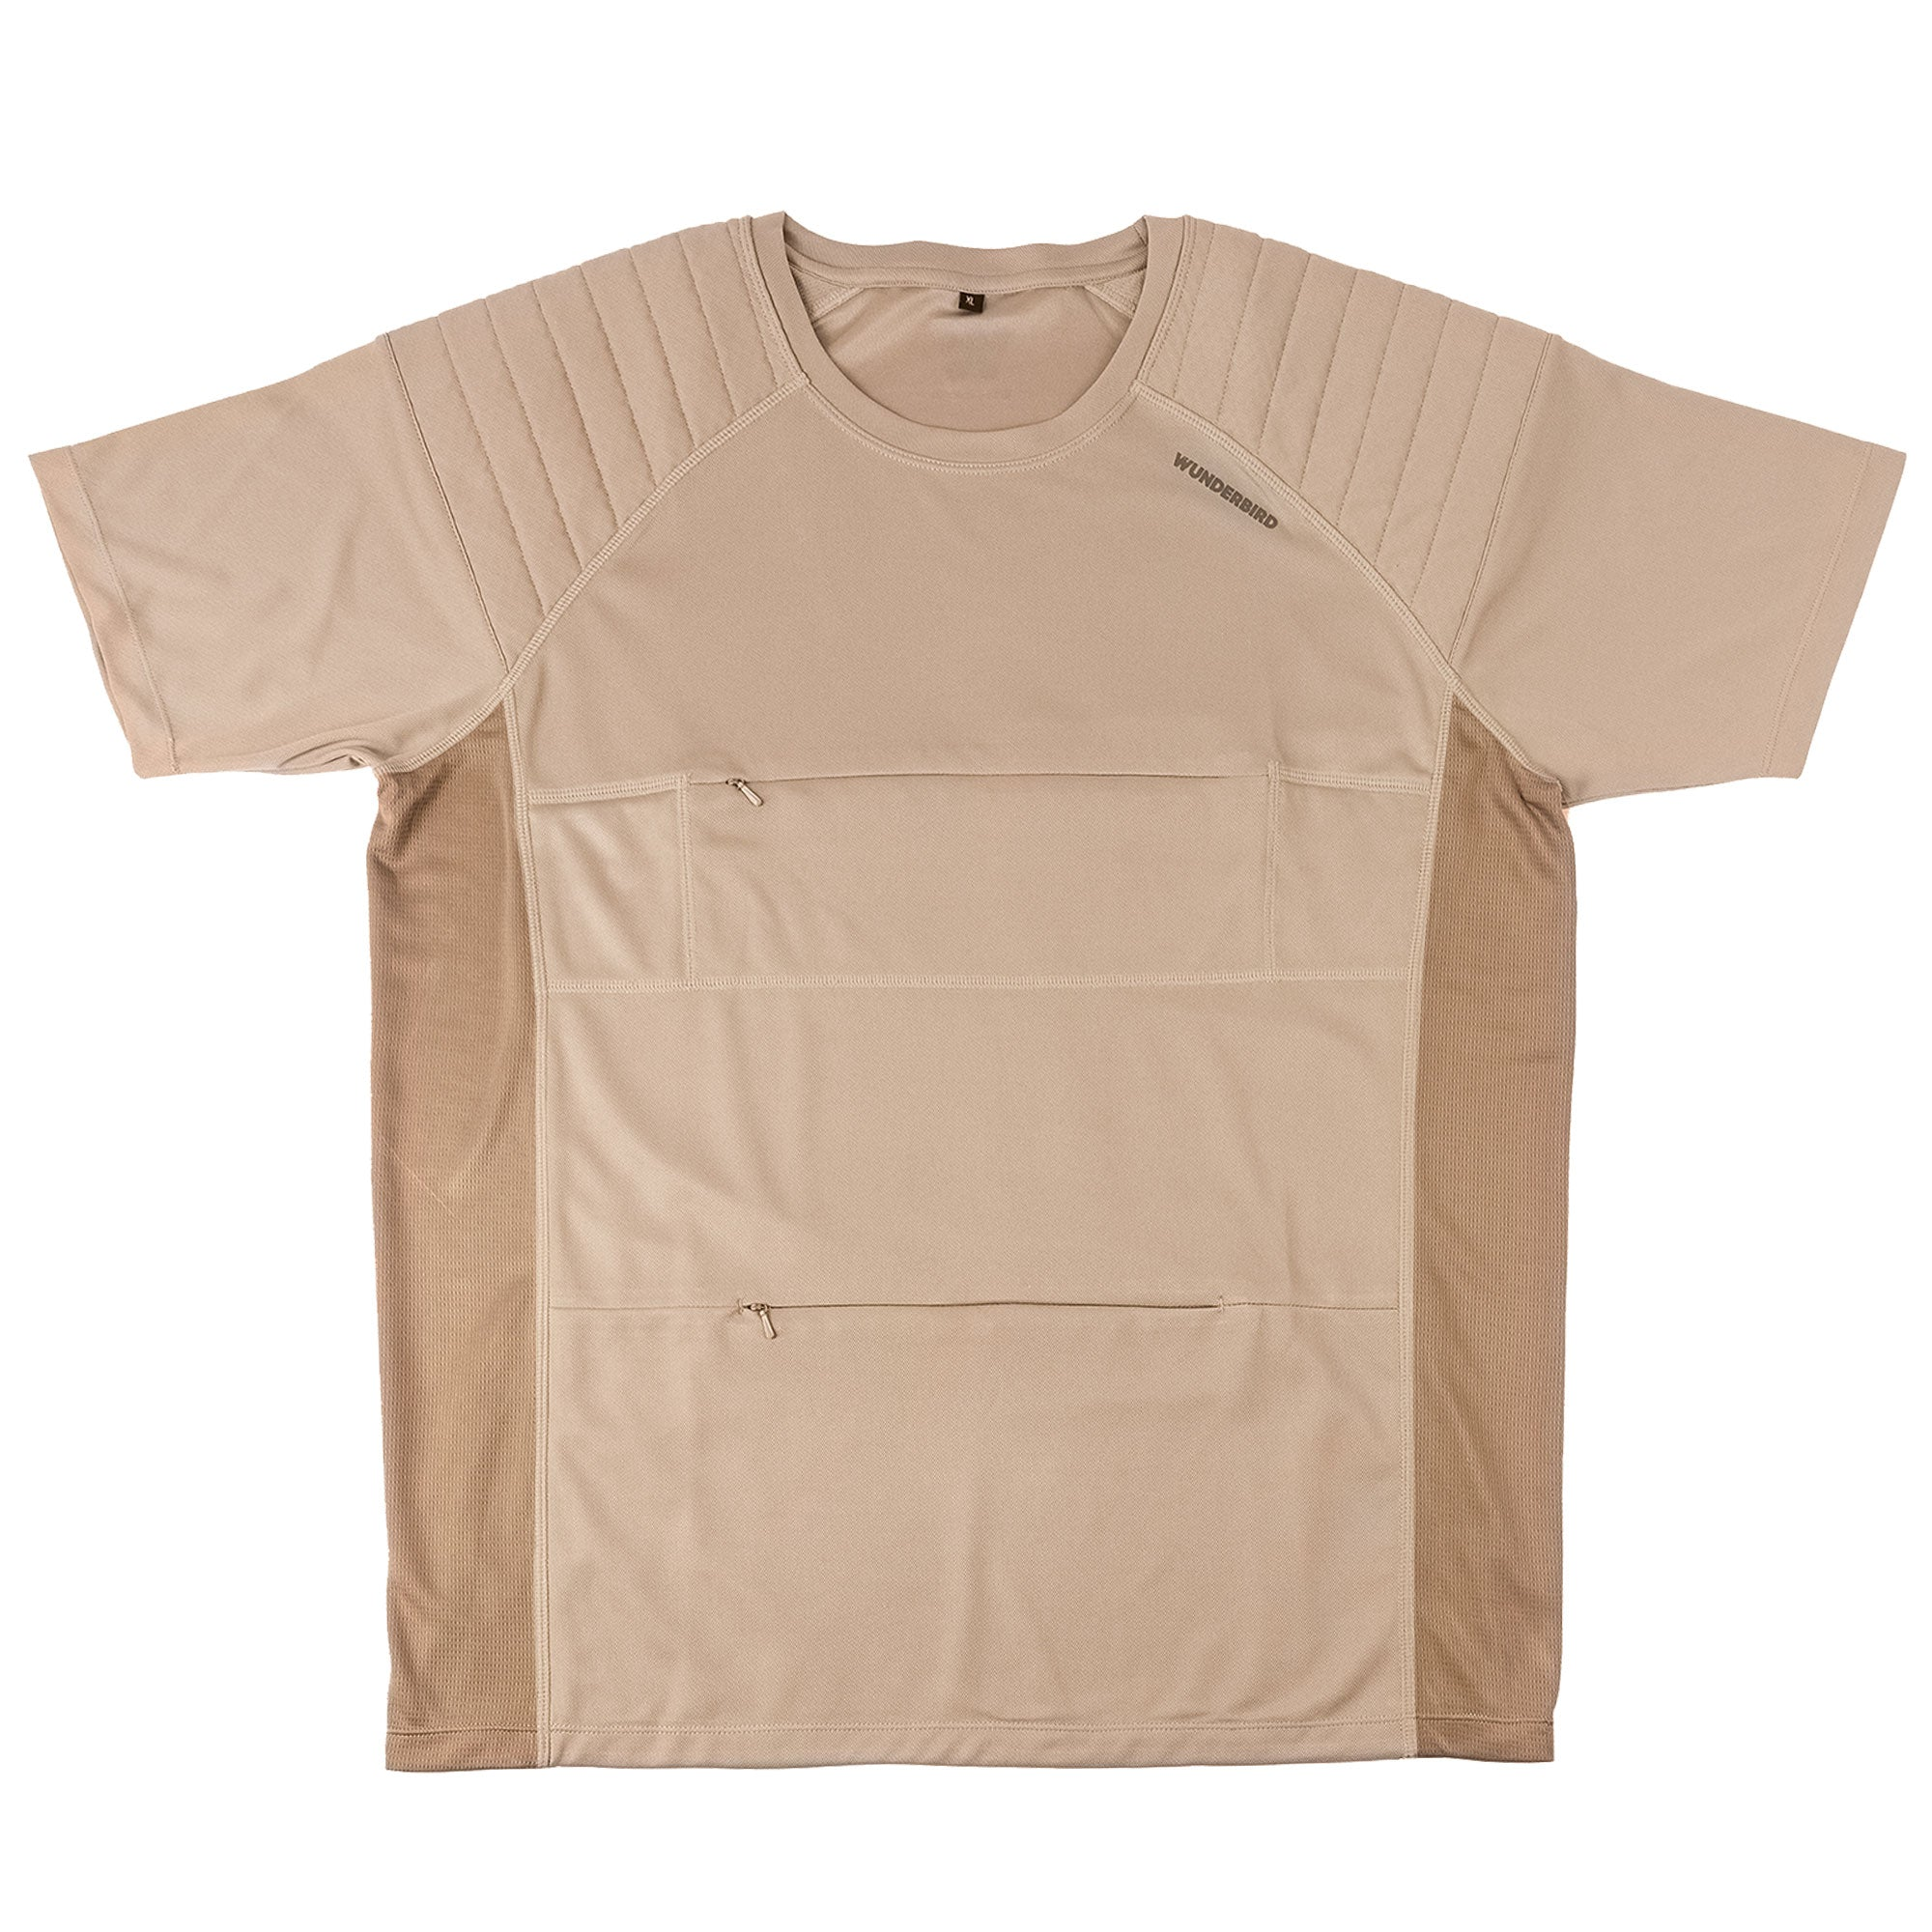 The Kestrel Short Sleeve Tee - sand